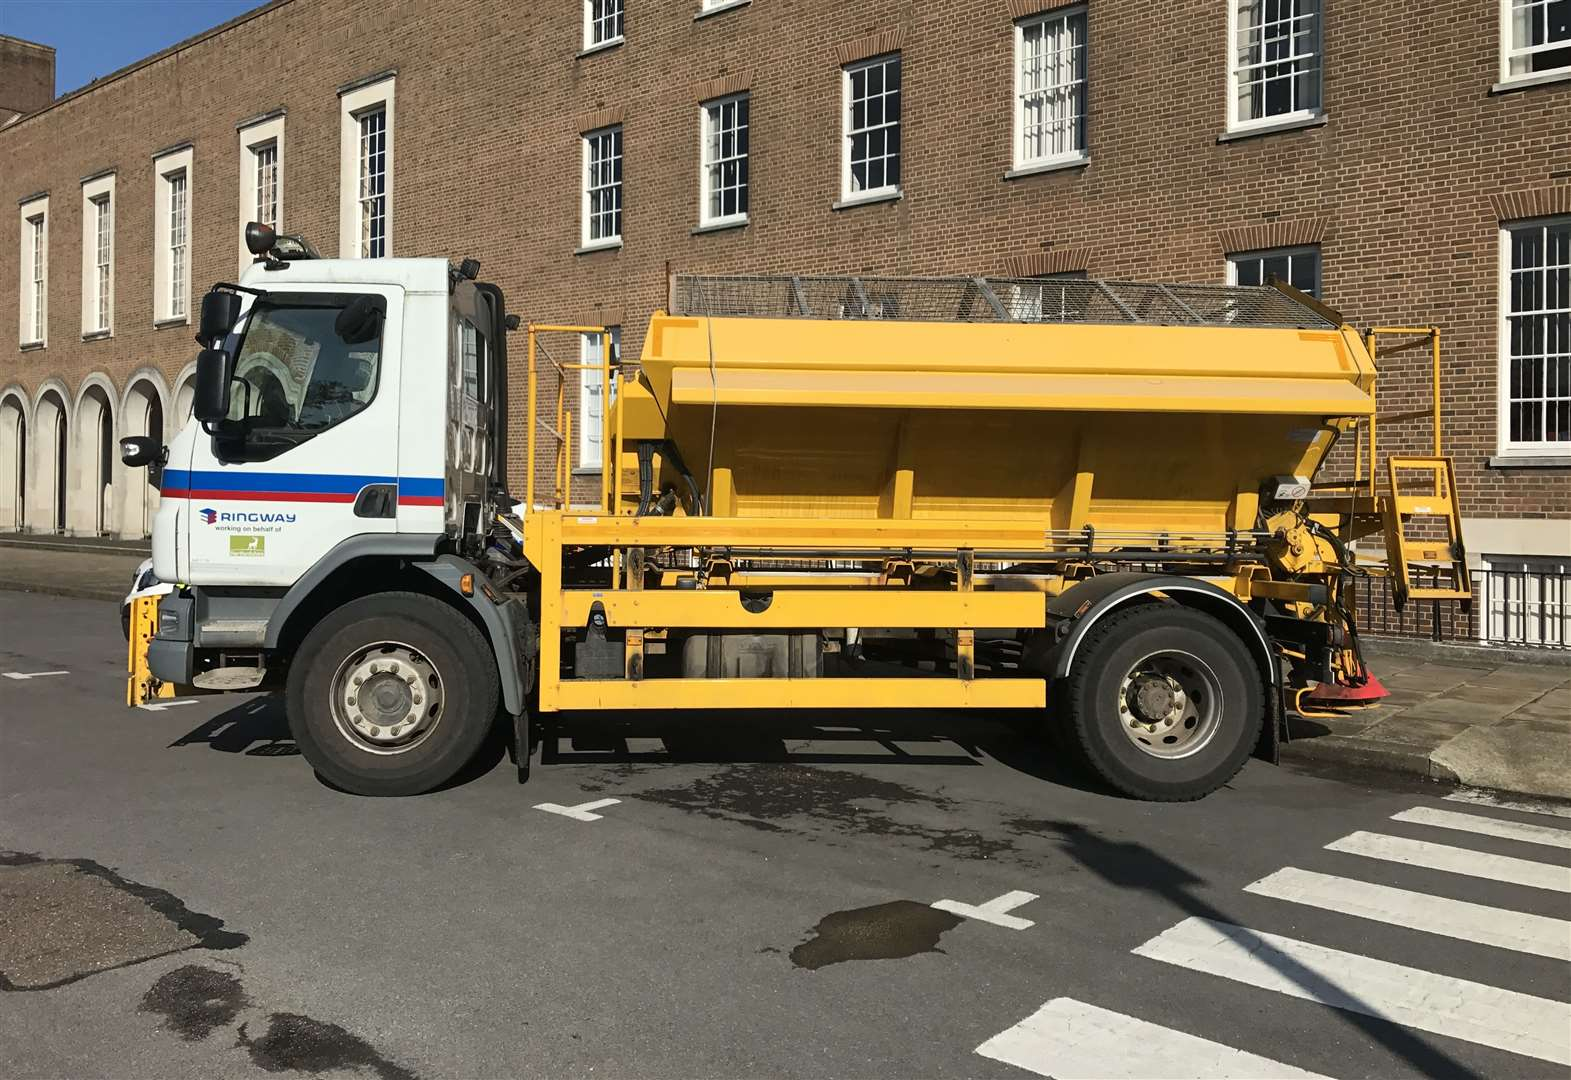 Name a Herts gritter: Can you top Gritney Spears, David Plowie or Spreadie Mercury?